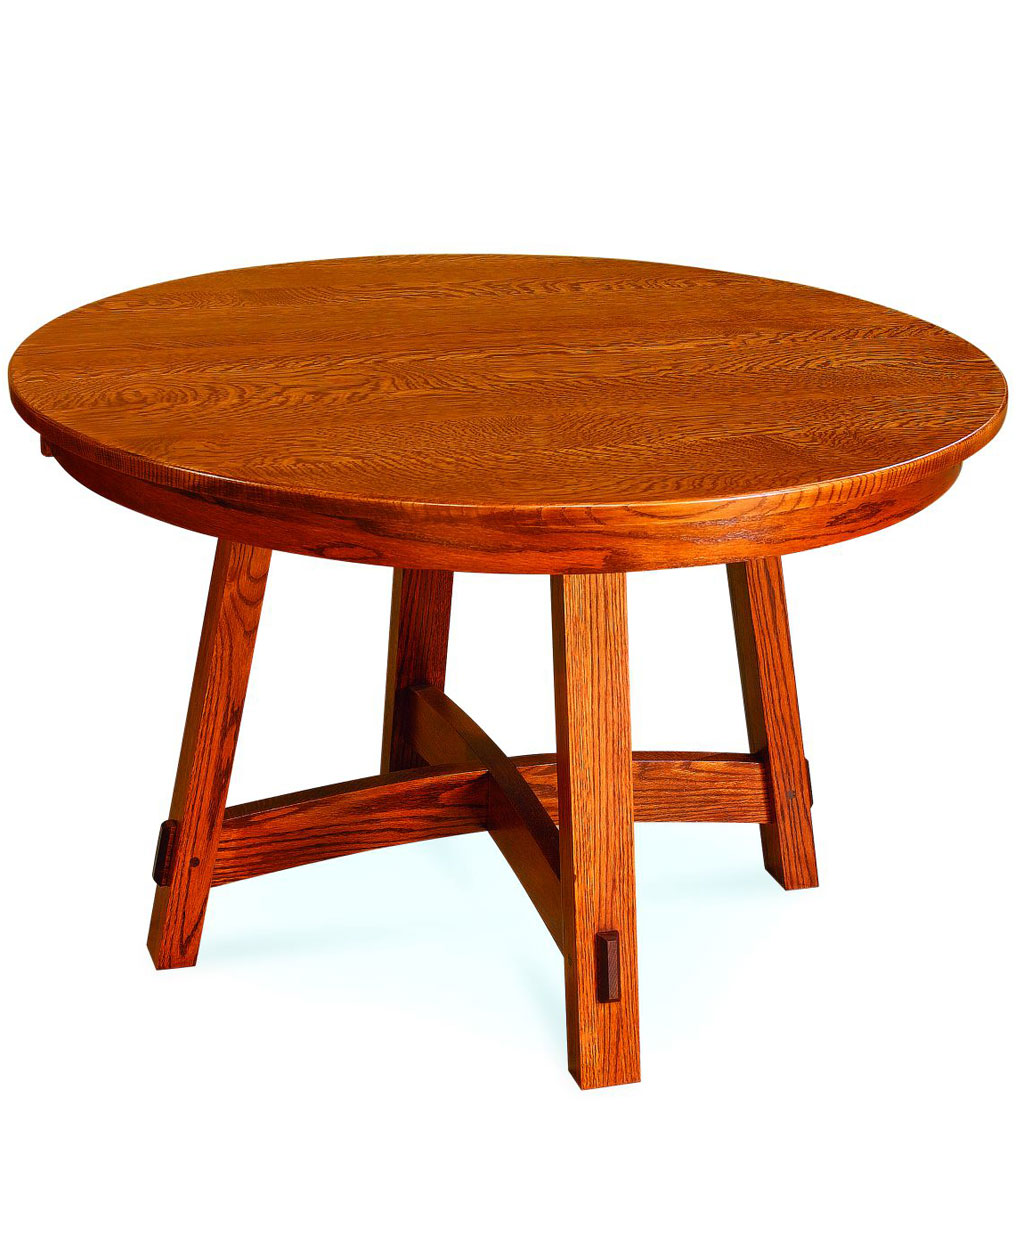 Colbran Amish Dining Table